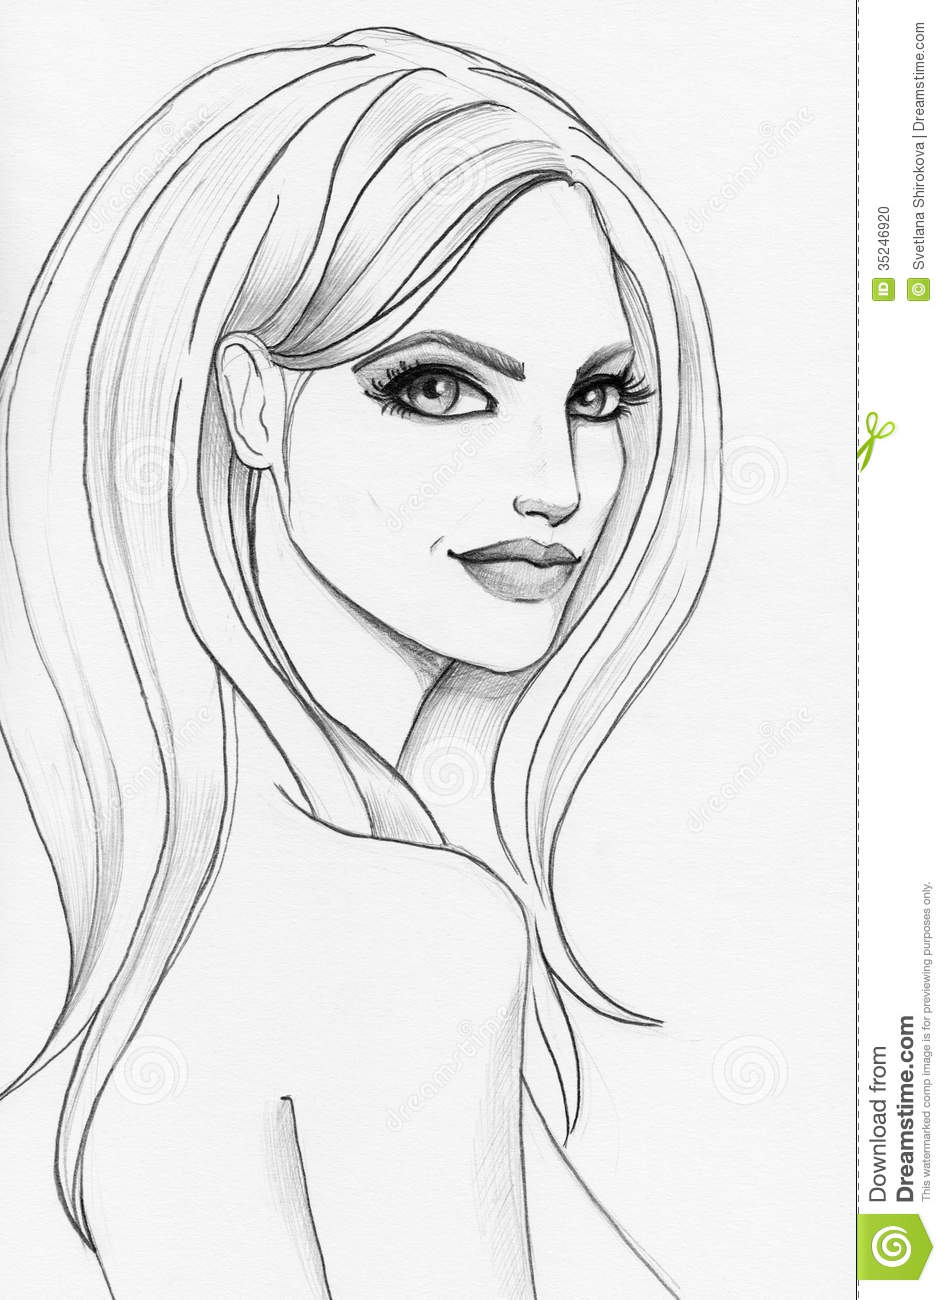 Pencil sketch of a beautiful girl